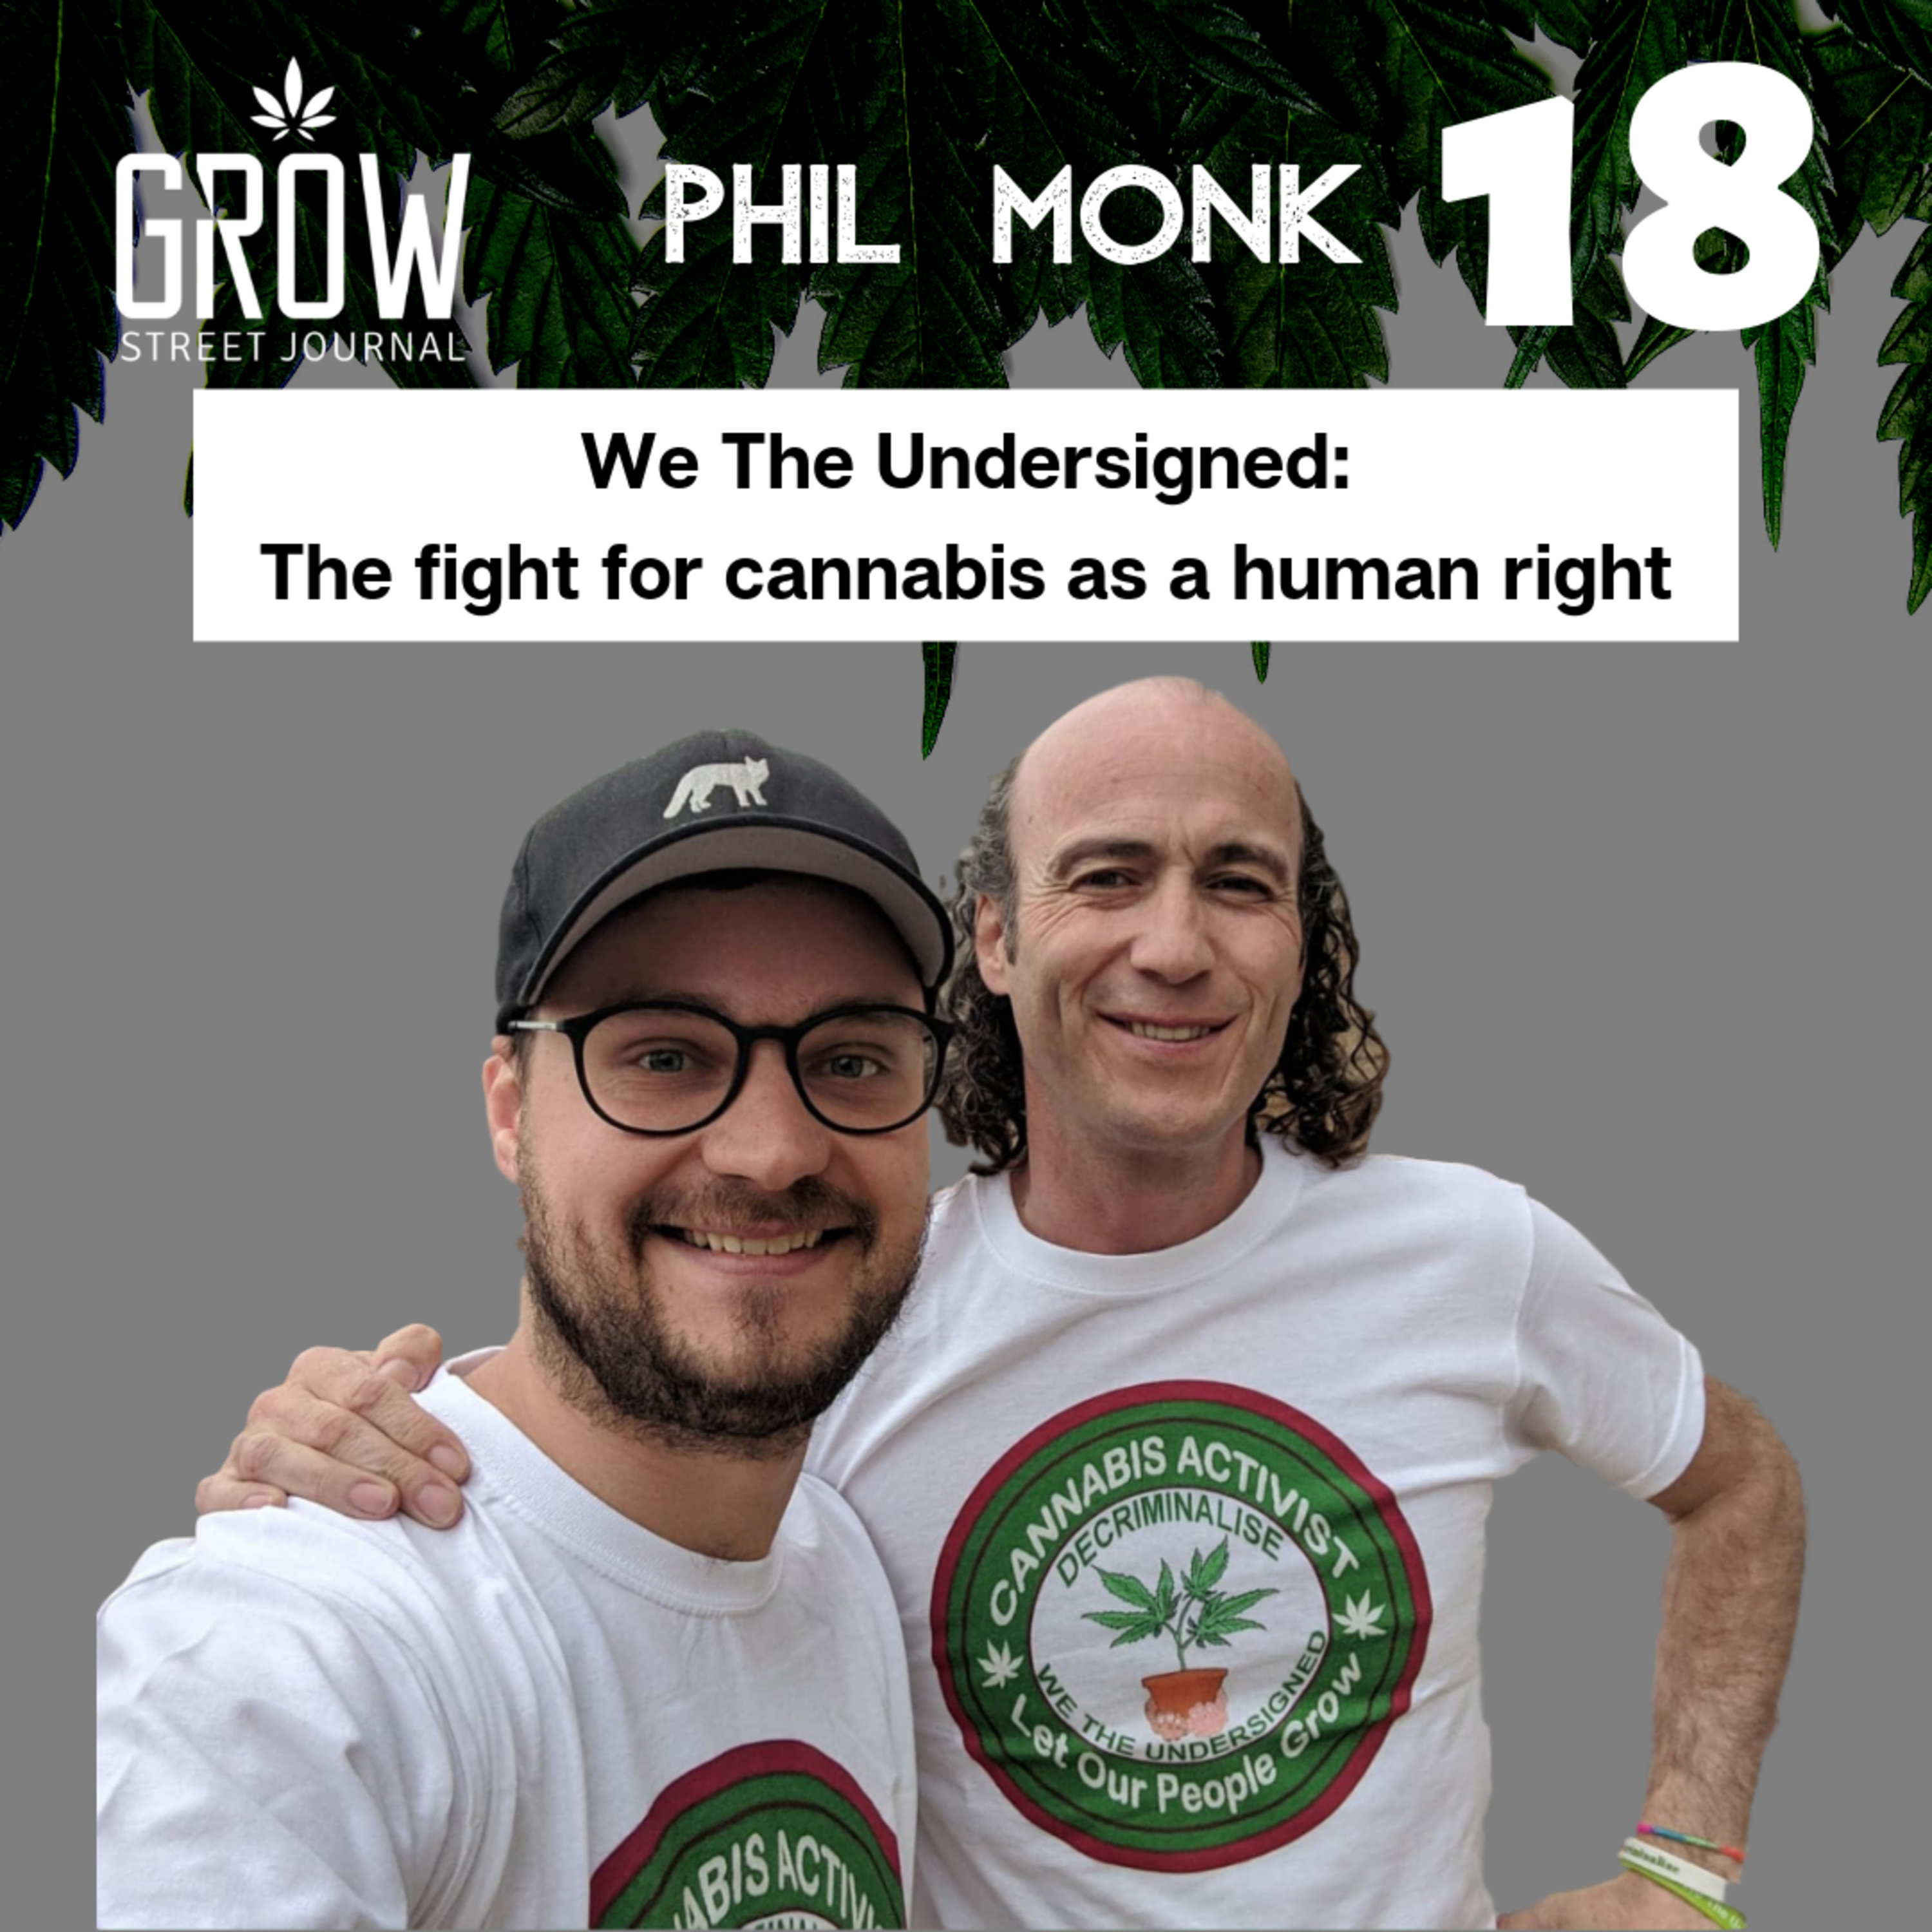 We The Undersigned - Phil Monk